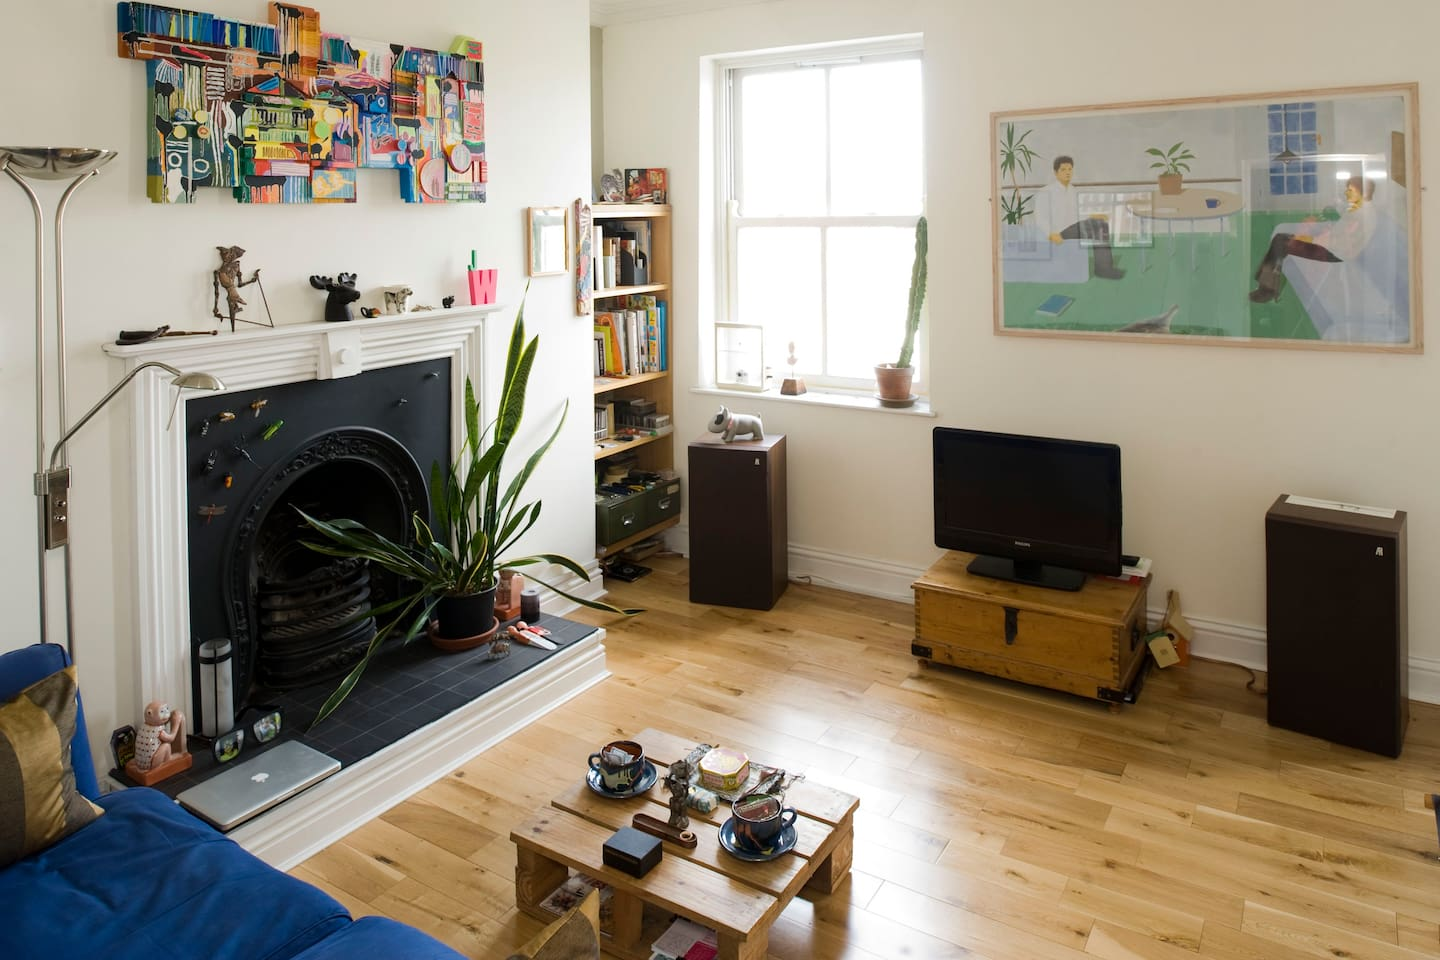 main front room - (if you stay long enough, you end up replacing the two figures in the painting)